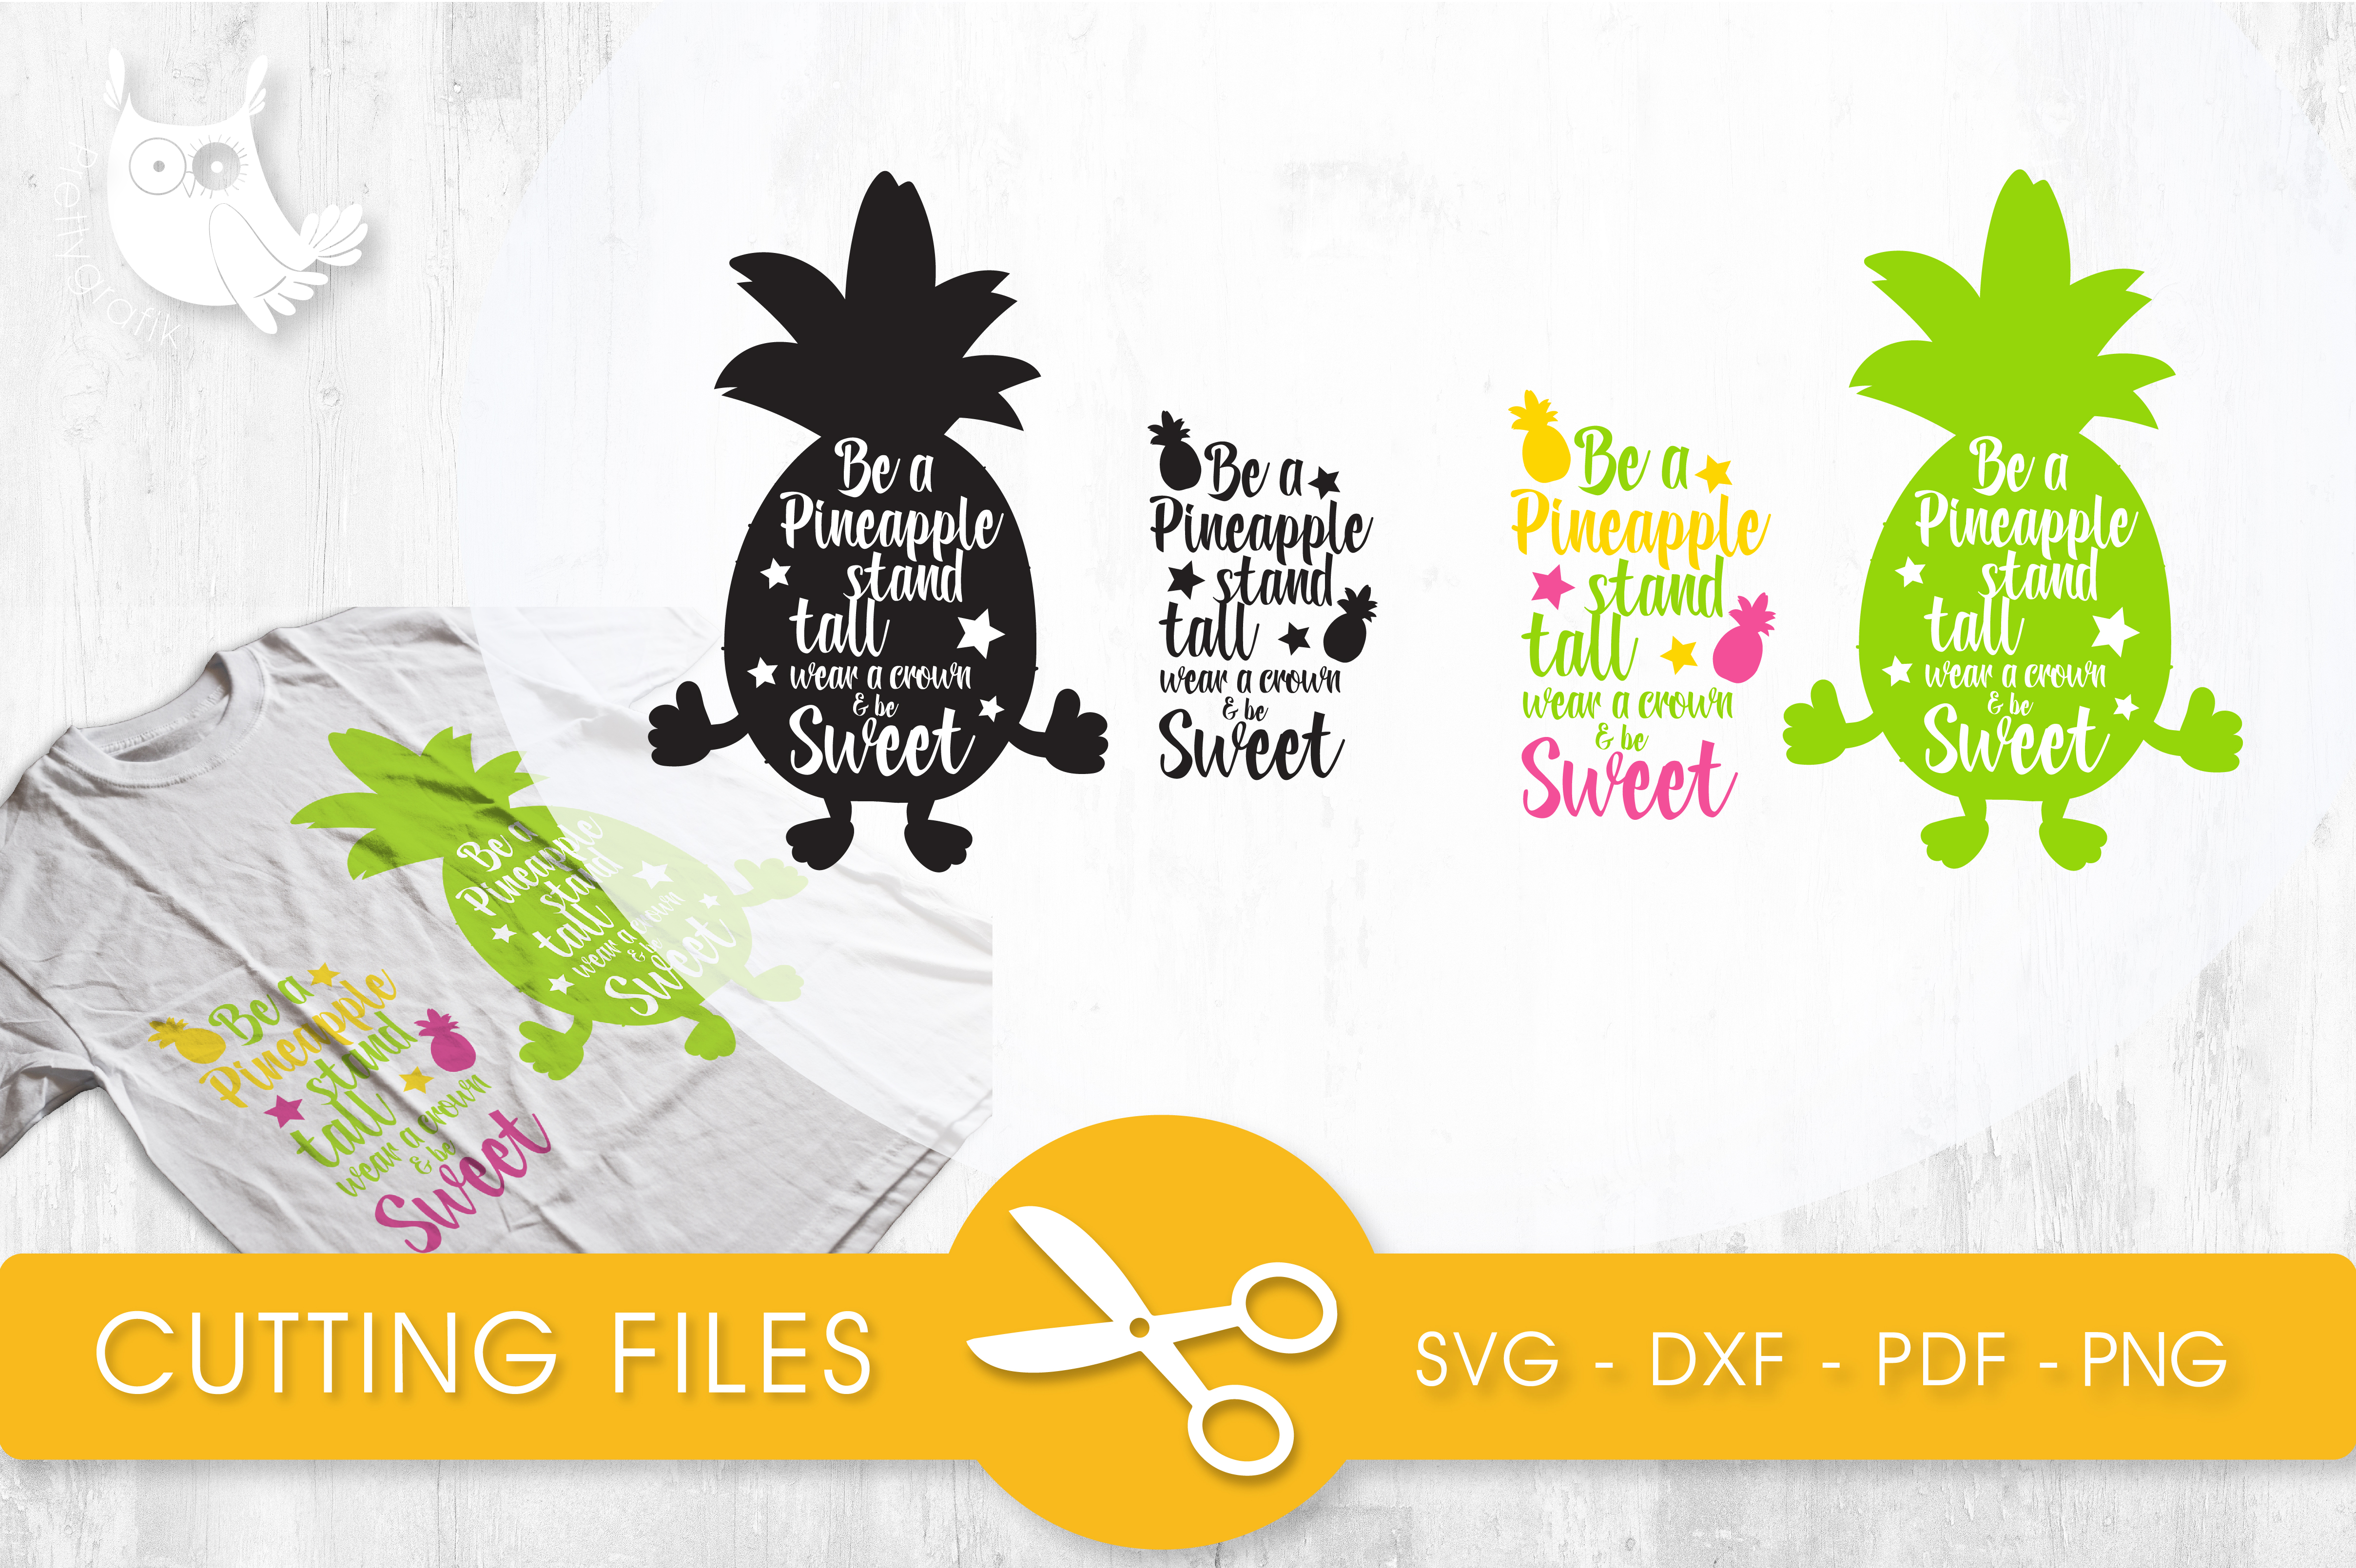 Download Free Be A Pineapple Stand Tall Wear A Crown Be Sweet Graphic By for Cricut Explore, Silhouette and other cutting machines.